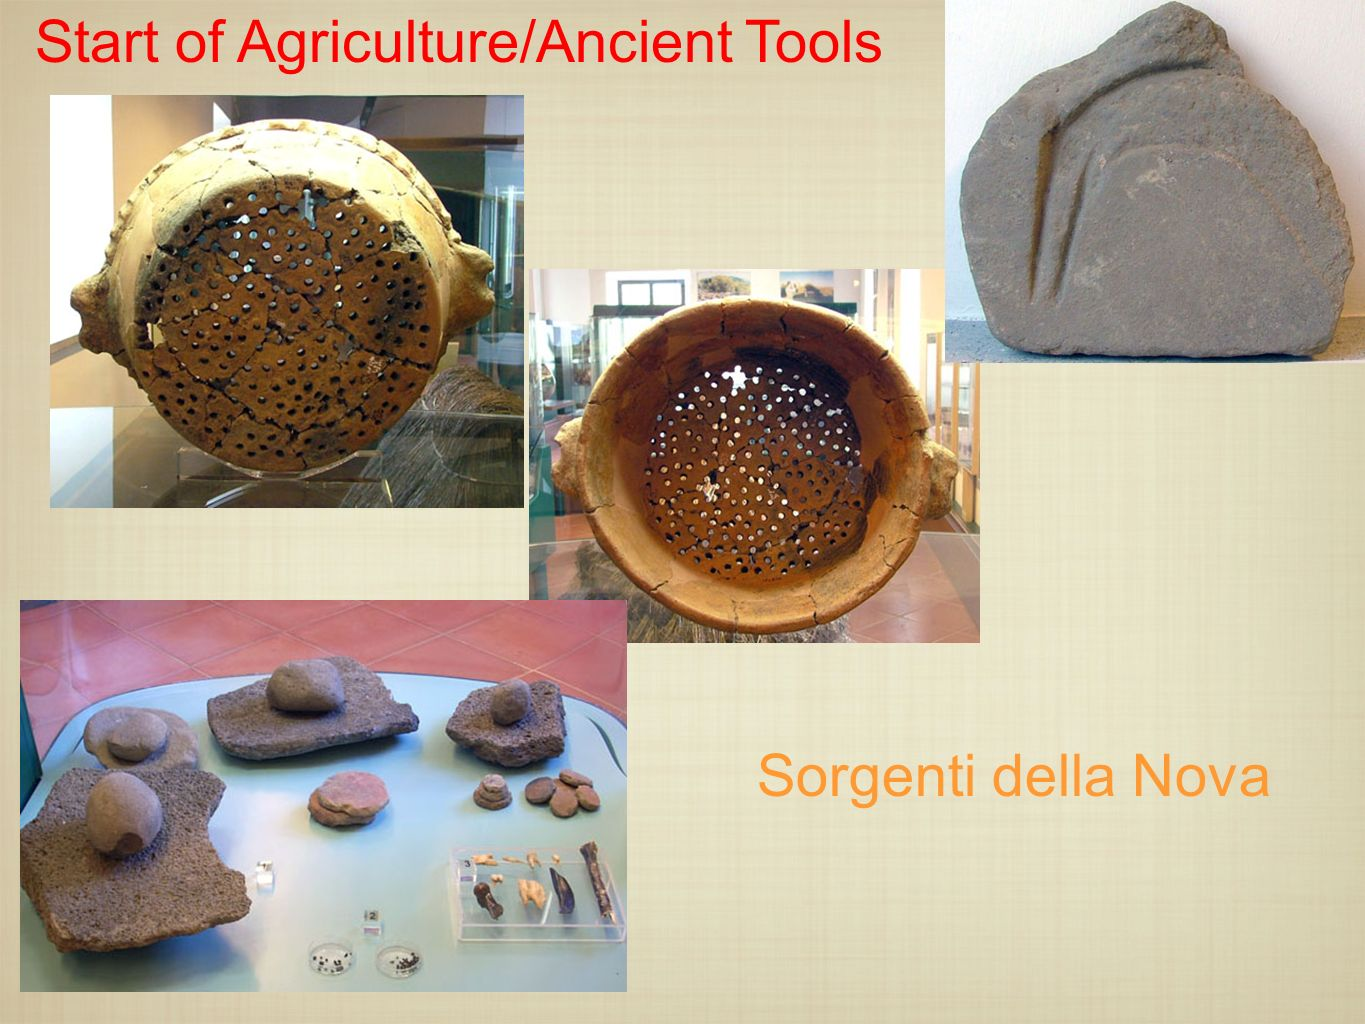 Start of Agriculture/Ancient Tools